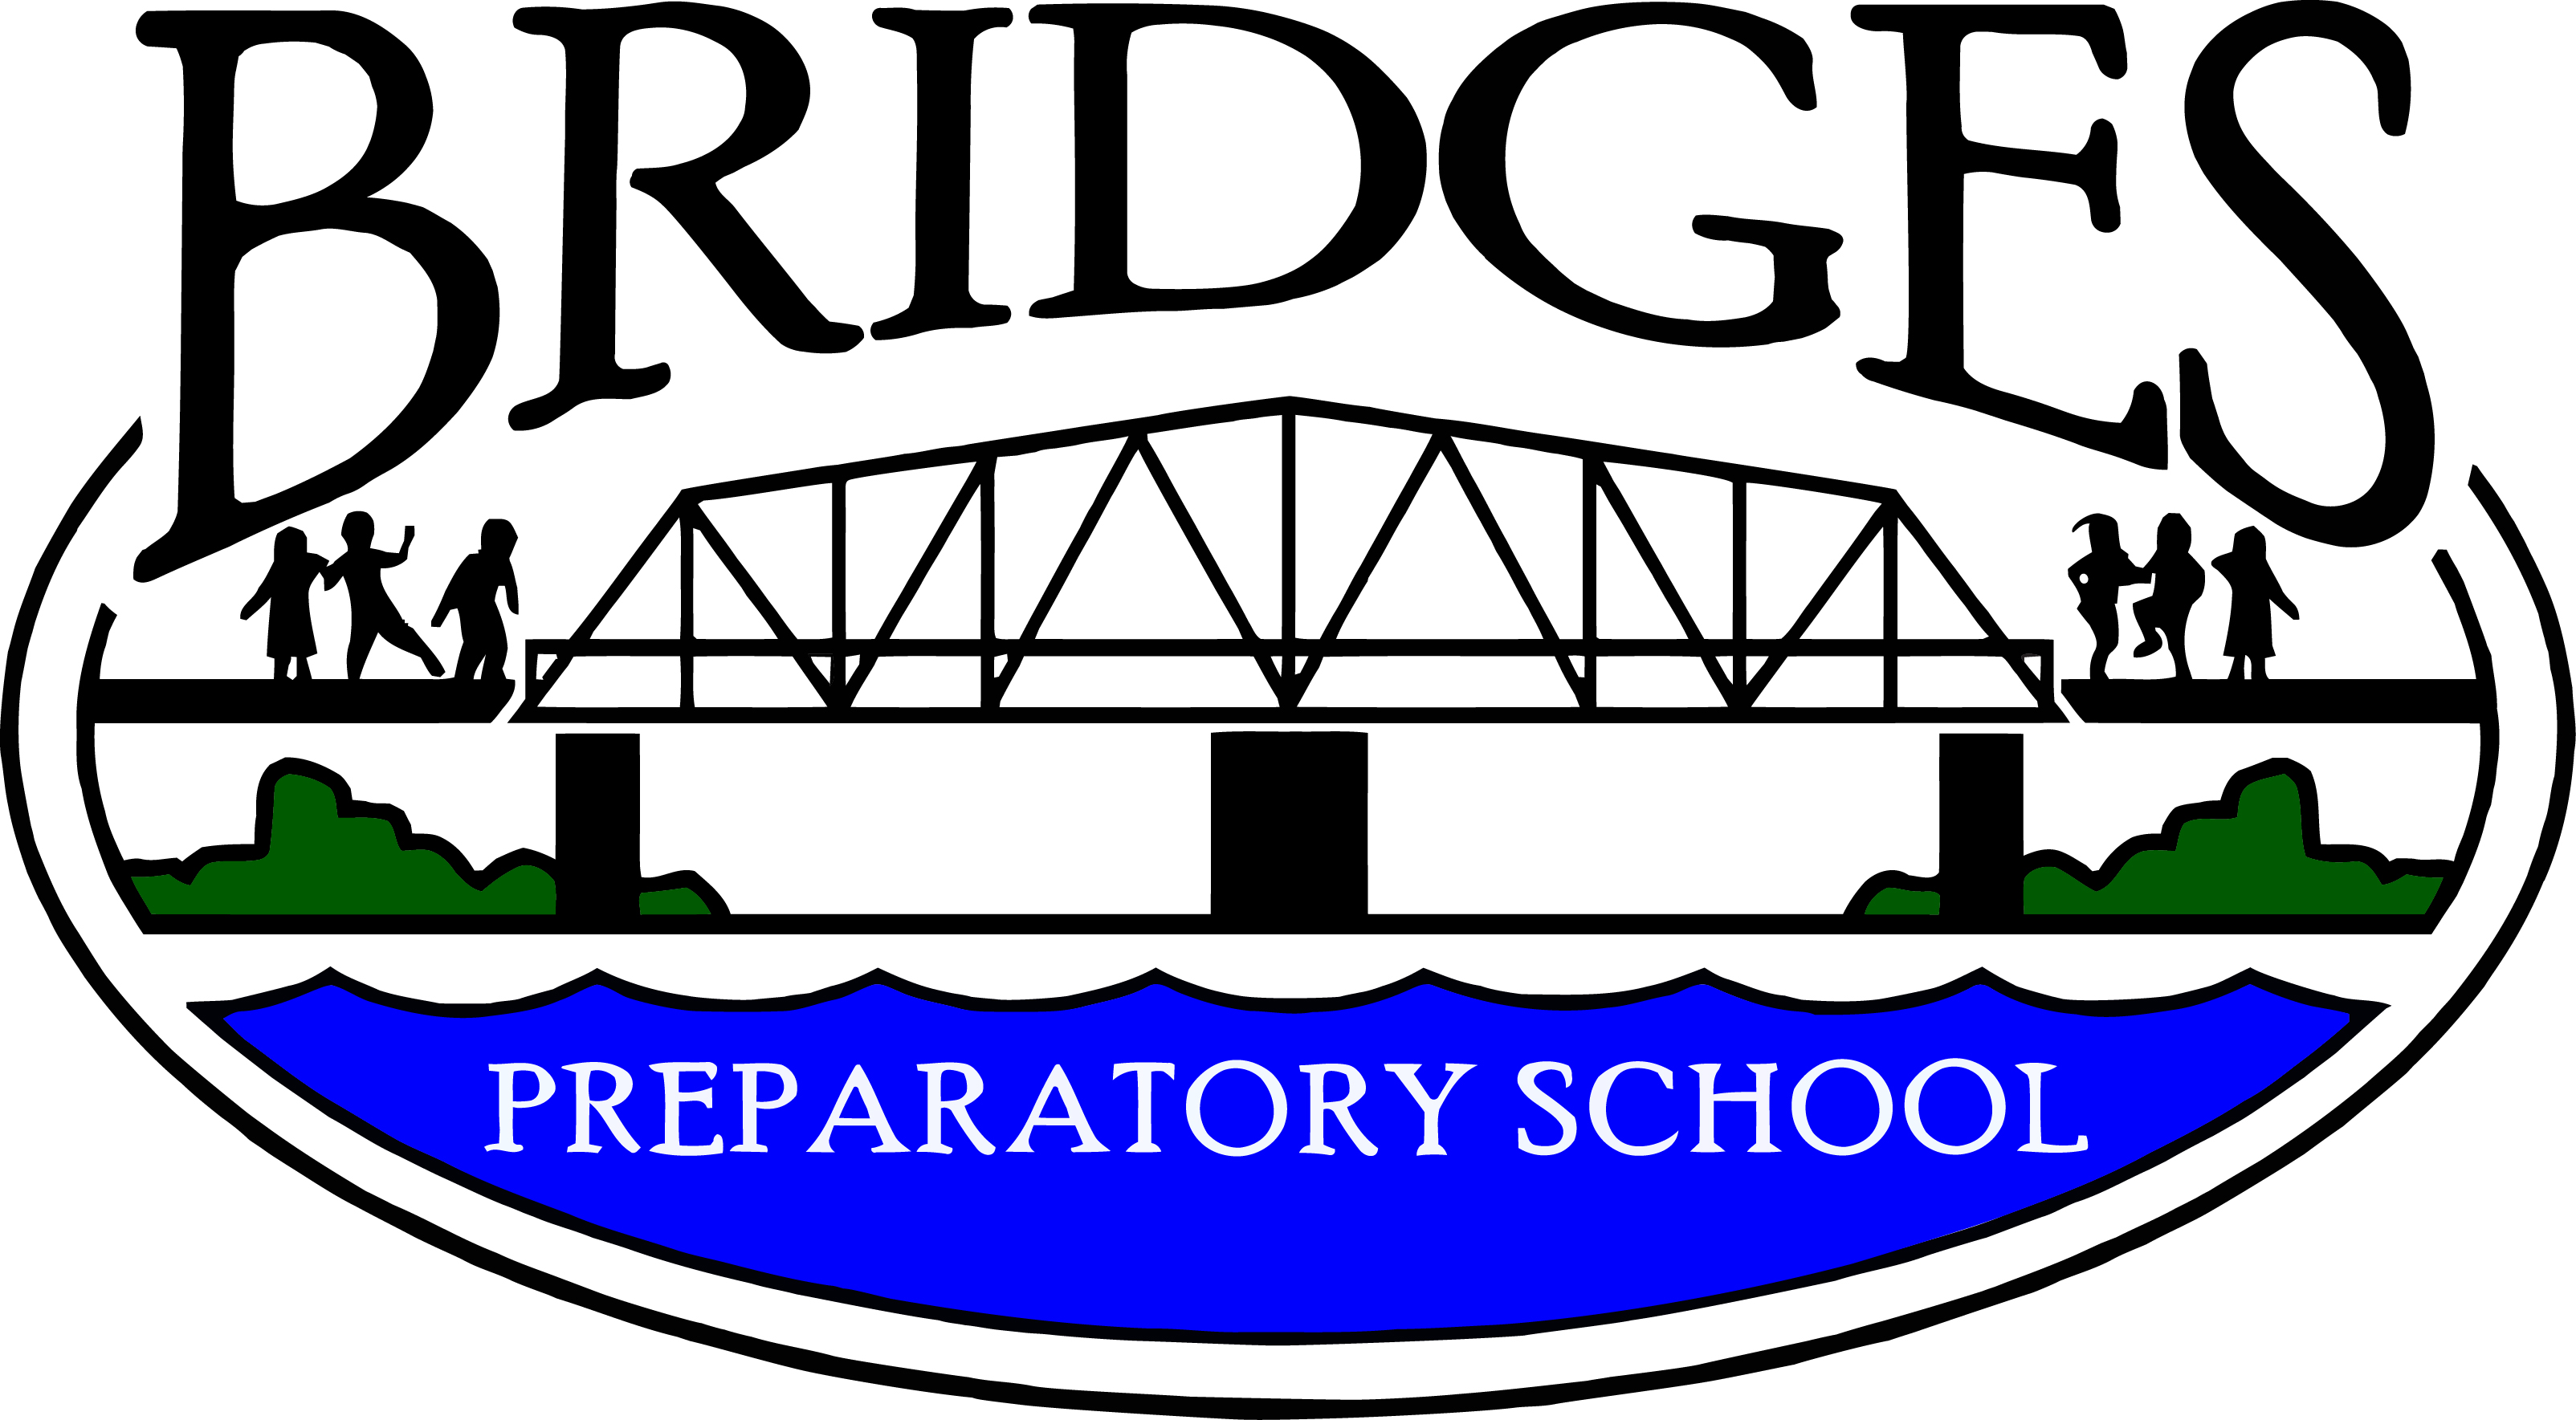 Bridges Preparatory School